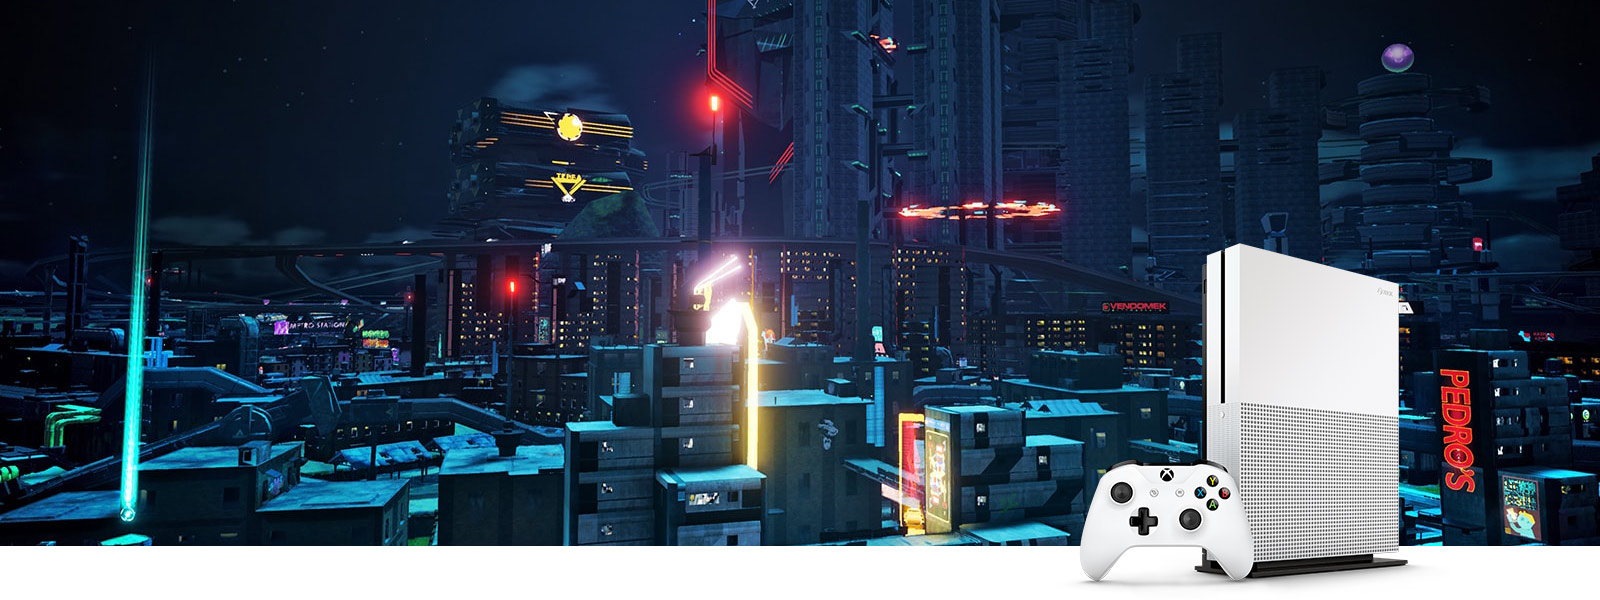 Crackdown 3 cityscape comparison screenshot with high dynamic range on